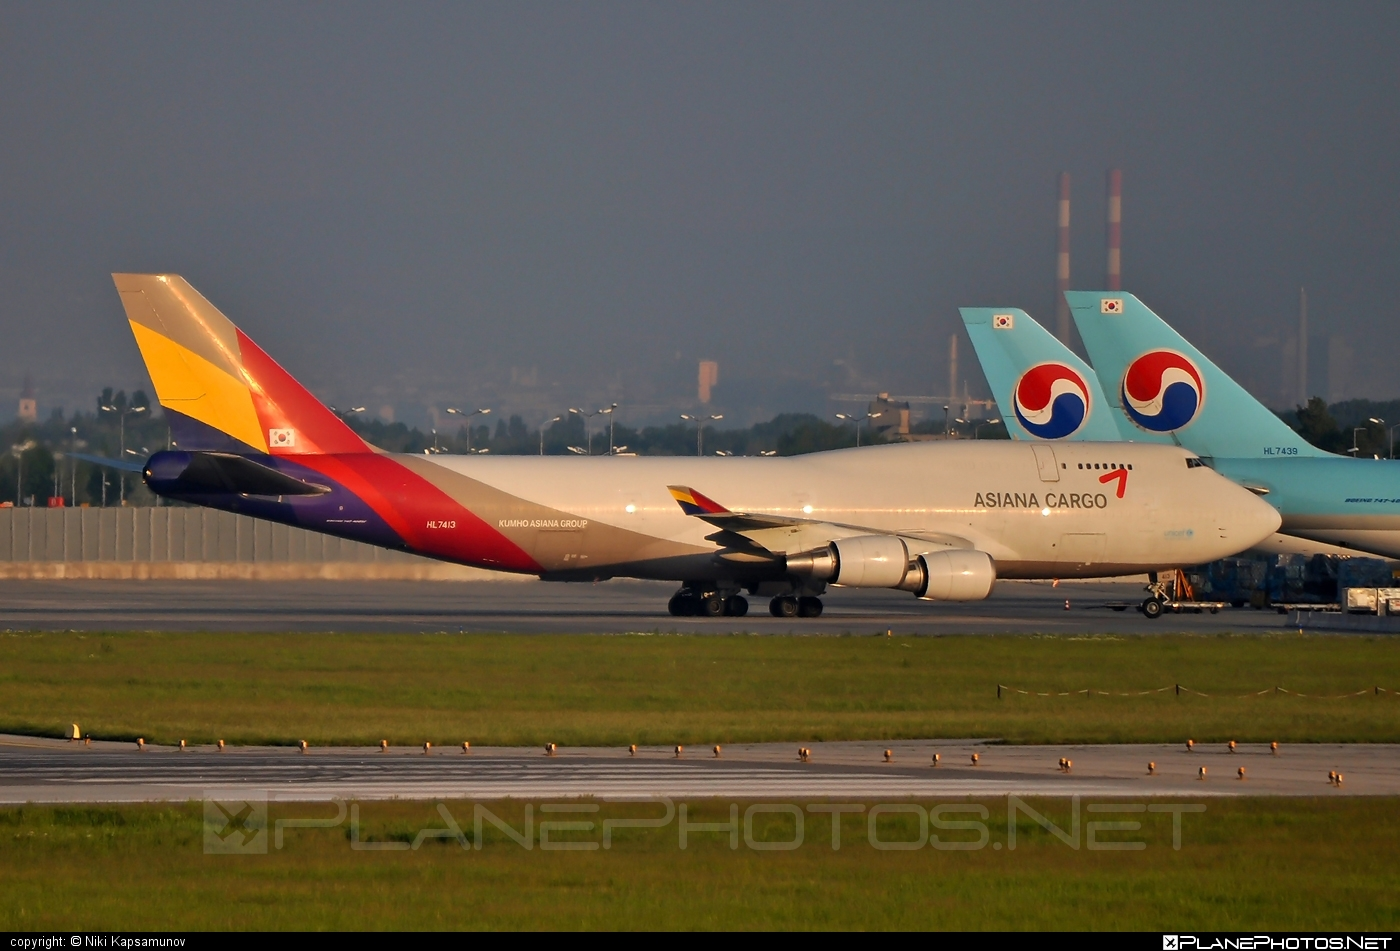 Boeing 747-400BDSF - HL7413 operated by Asiana Cargo #asianacargo #b747 #b747bdsf #b747freighter #bedekspecialfreighter #boeing #boeing747 #jumbo